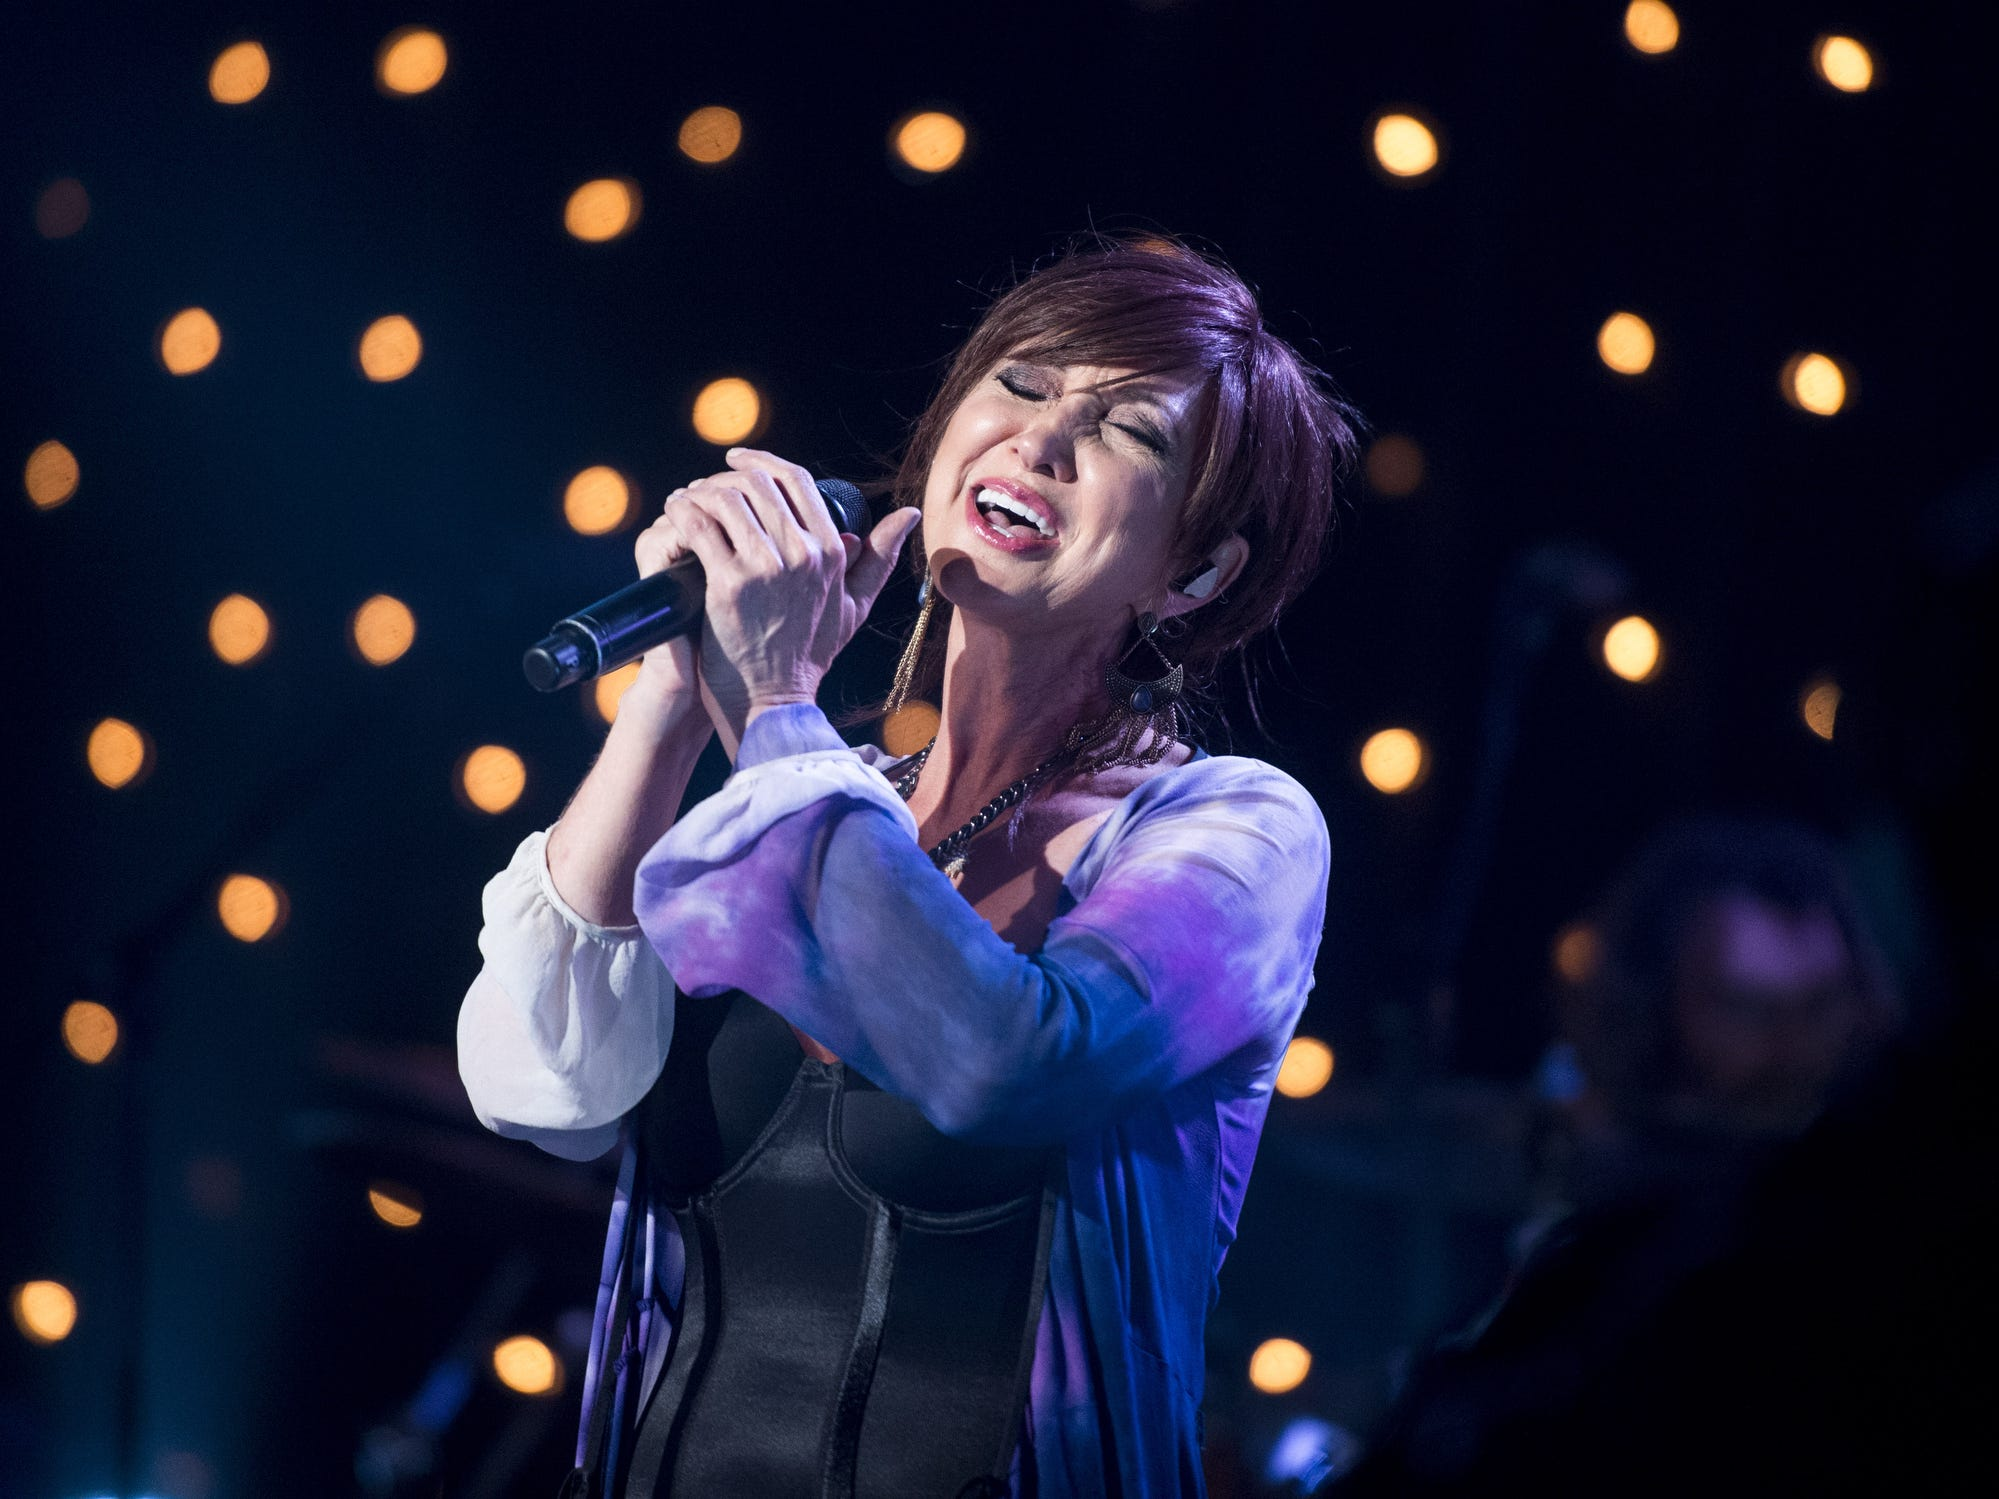 April 5 GRAND OLE OPRY WITH PAM TILLIS, MORE: 7 p.m. Grand Ole Opry House, $40-$110, opry.com